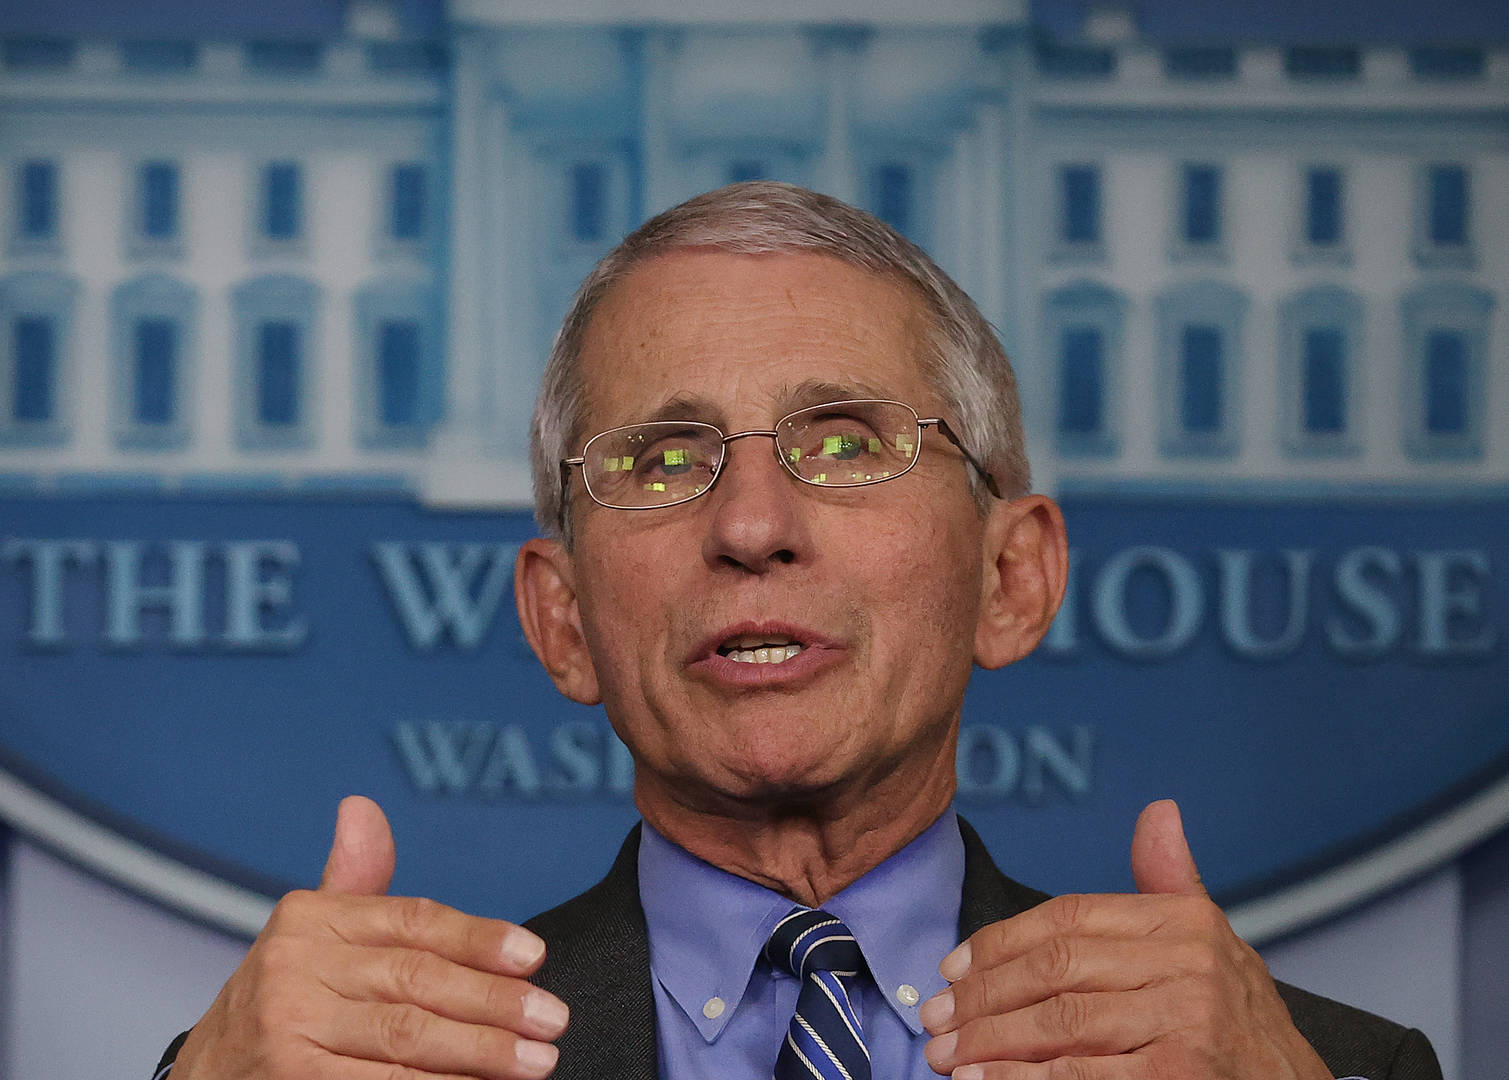 Anthony Fauci wants Brad Pitt to play him on SNL